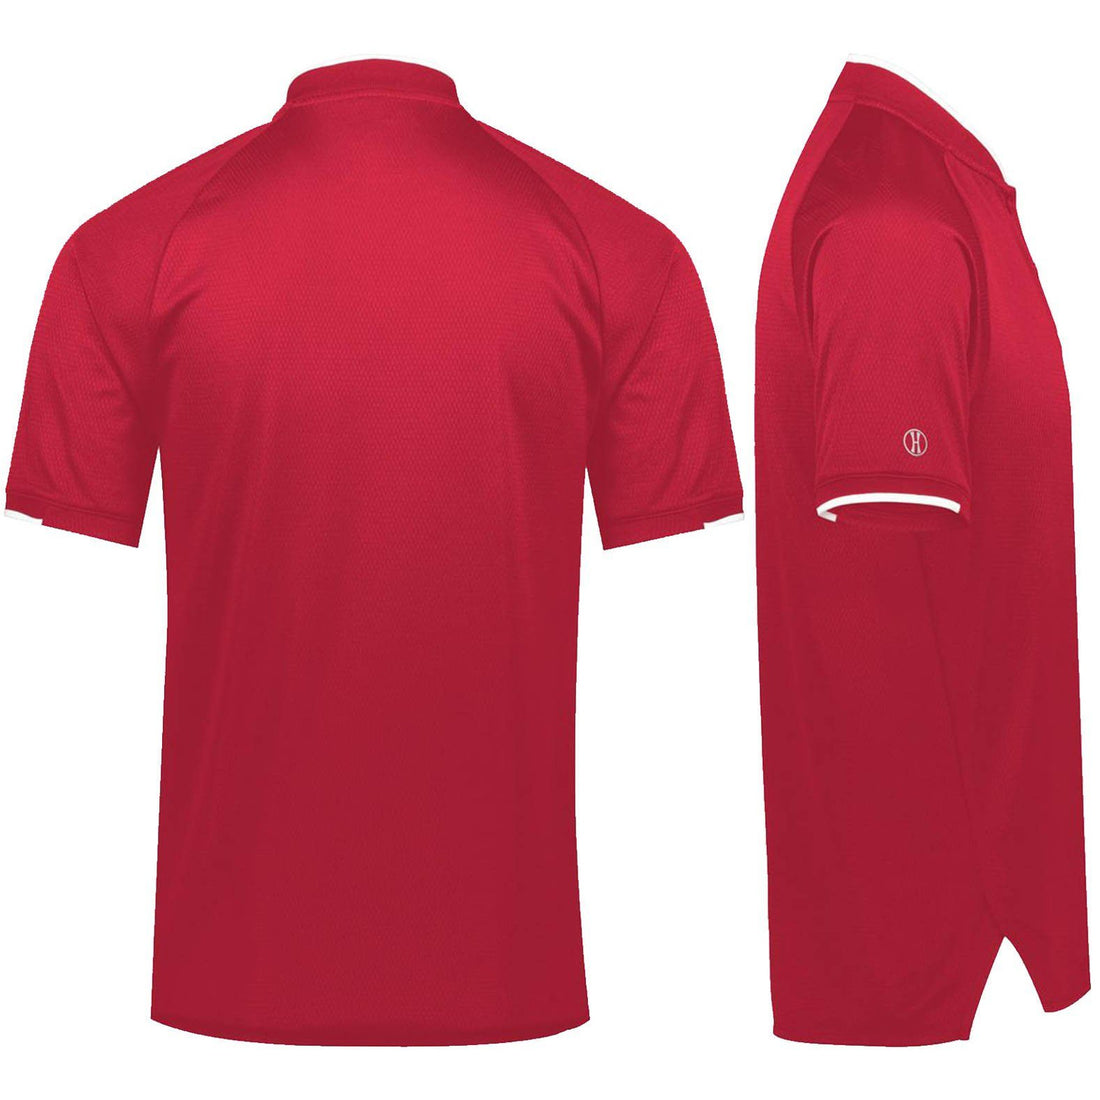 Combat Charged EGA Embroidered Mock Collar Dri-Fit Performance Polo - Marine Corps Direct